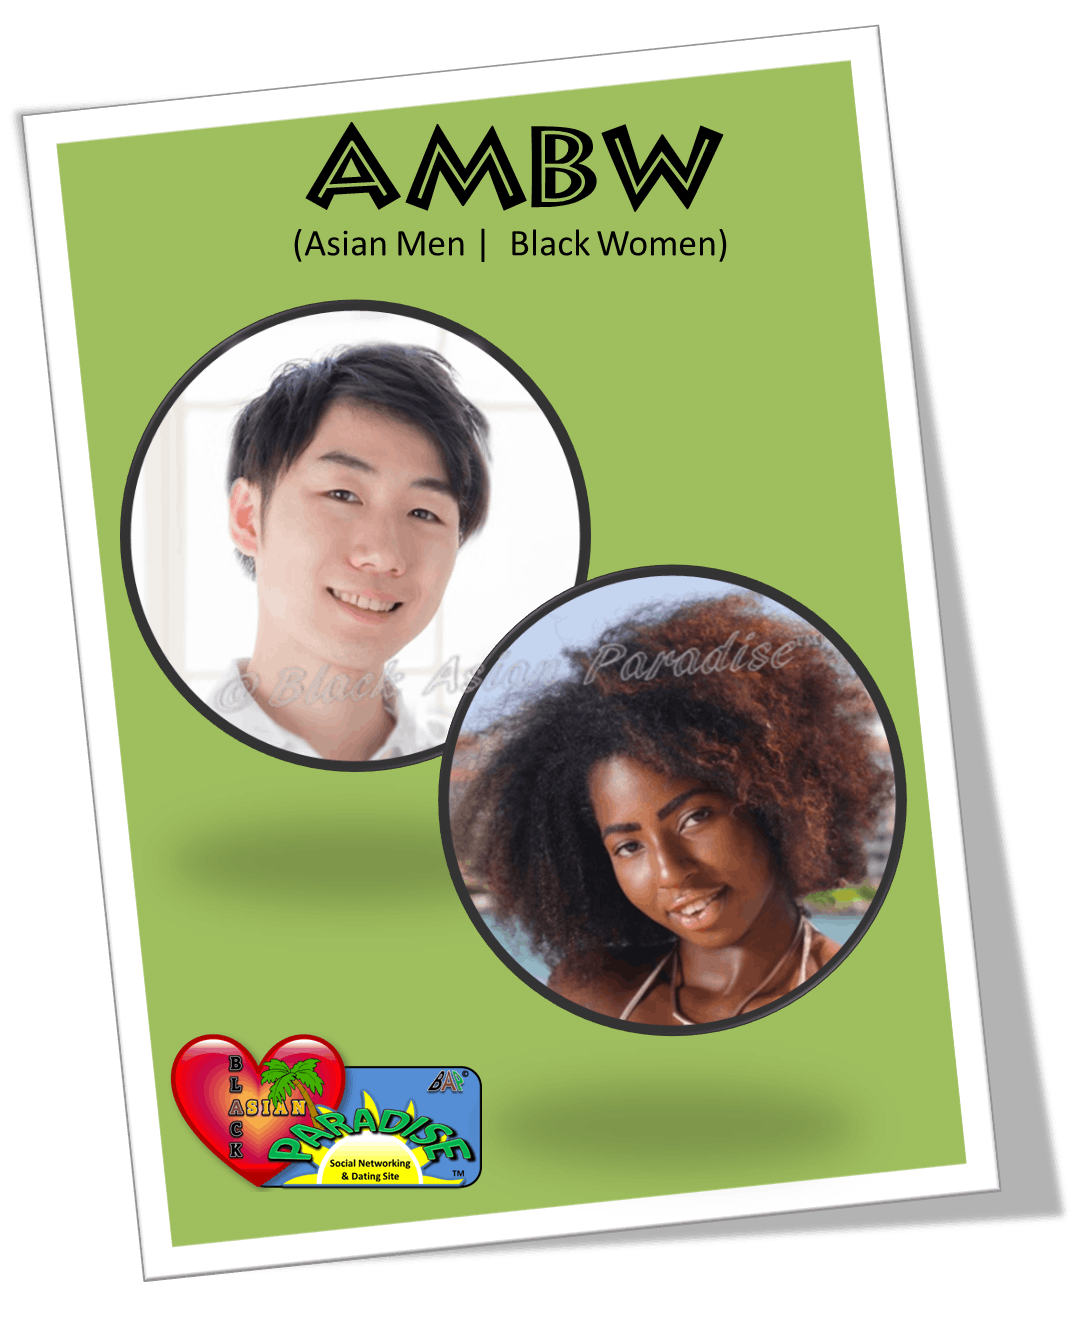 AMBW Dating, Asian Men Who Like Black Women, Black Women Who Like Asian Men, Black Women Asian Men, Black Women, Asian Men, AMBW, BWAM, Asian Men Black Women Dating, Black Women Asian Men Dating, Black Women Dating Asian Men, Asian Men Dating Black Women, Interracial, Relationship Goals, Blasian, Asian Persuasian, Date Asian Guys, Date Black Girls, Love Has No Color, BWAM dating, AMBW love, BWAM love, Blasian Love, Asian and Black, Black and Asian, Date Asian Men, Black Women, Interracial Dating, Black Girl Asian Guy, Black Women Asian Men, Swirl, Swirl Life, Interracial Love